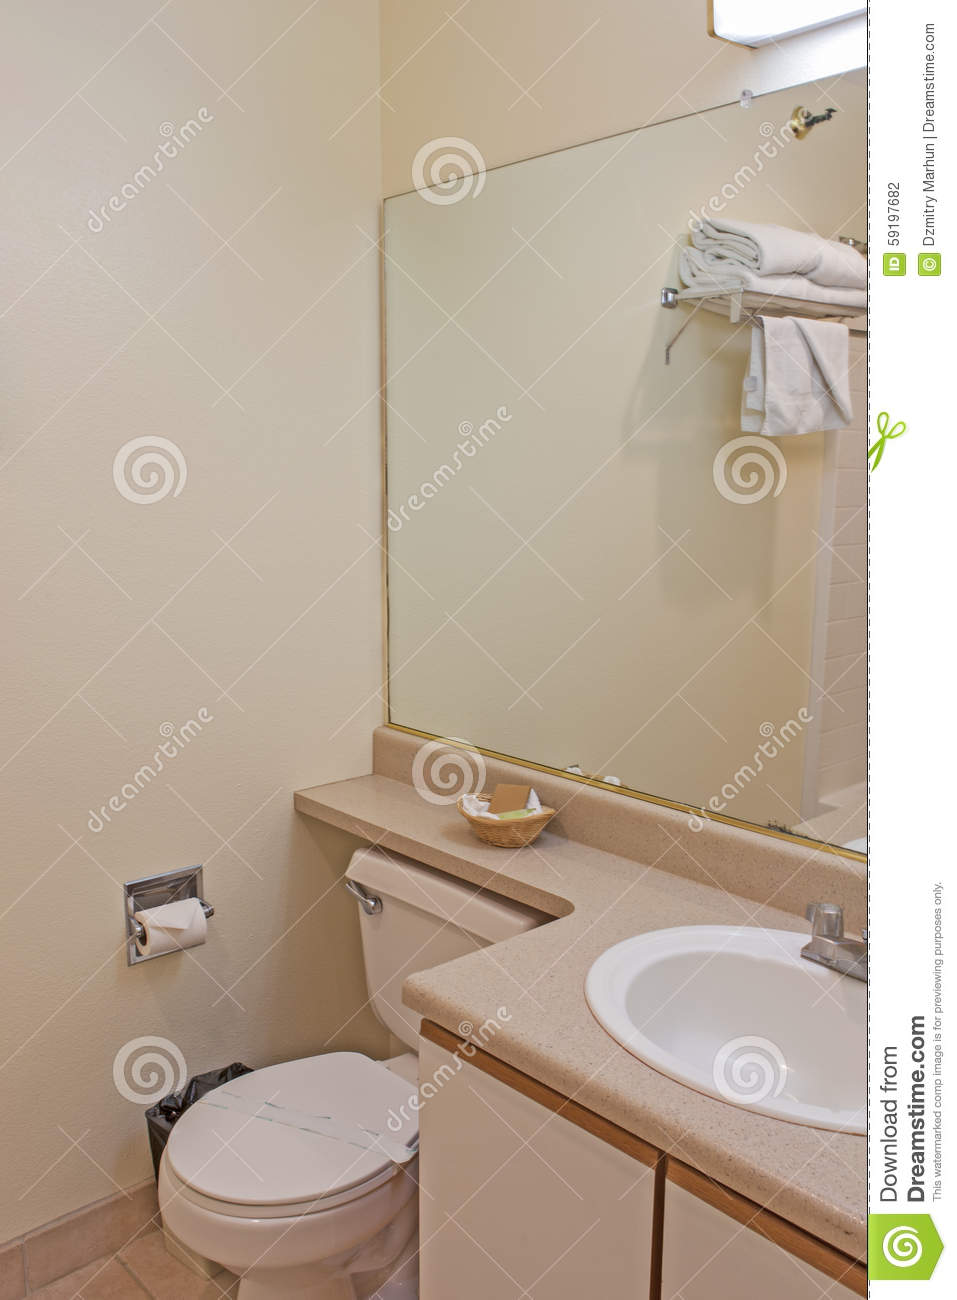 Interior of Modern Bathroom Environment in Pastel colors